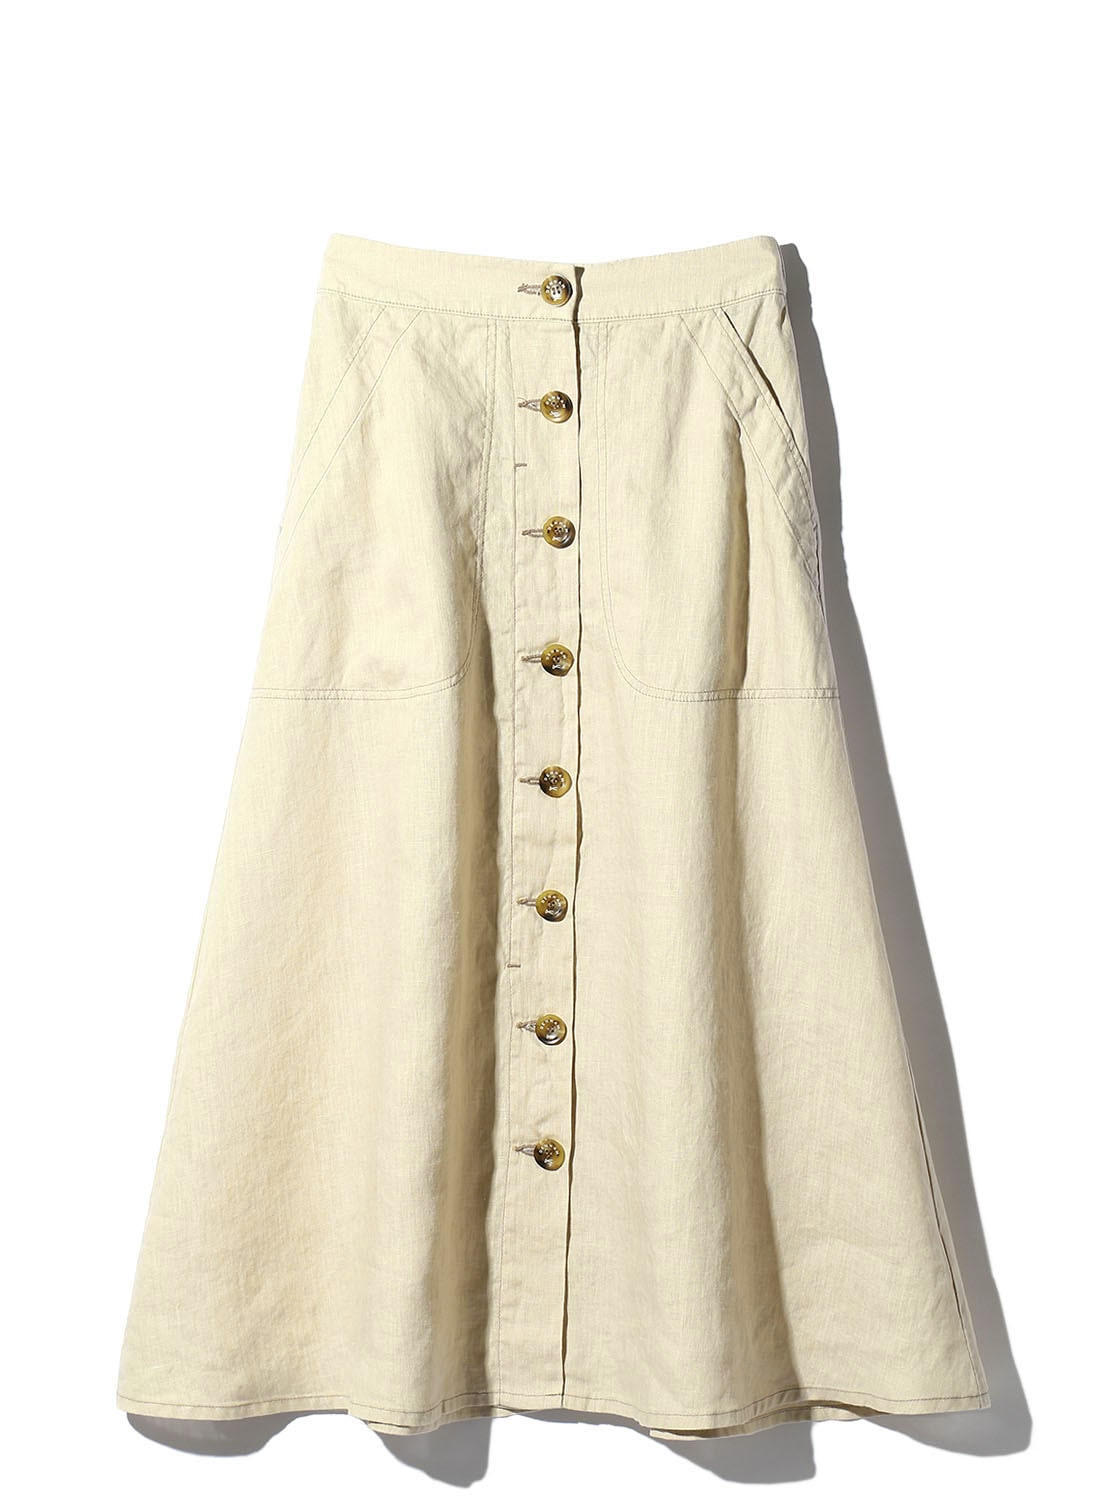 【日本限定】 LINEN FRENCH SKIRT